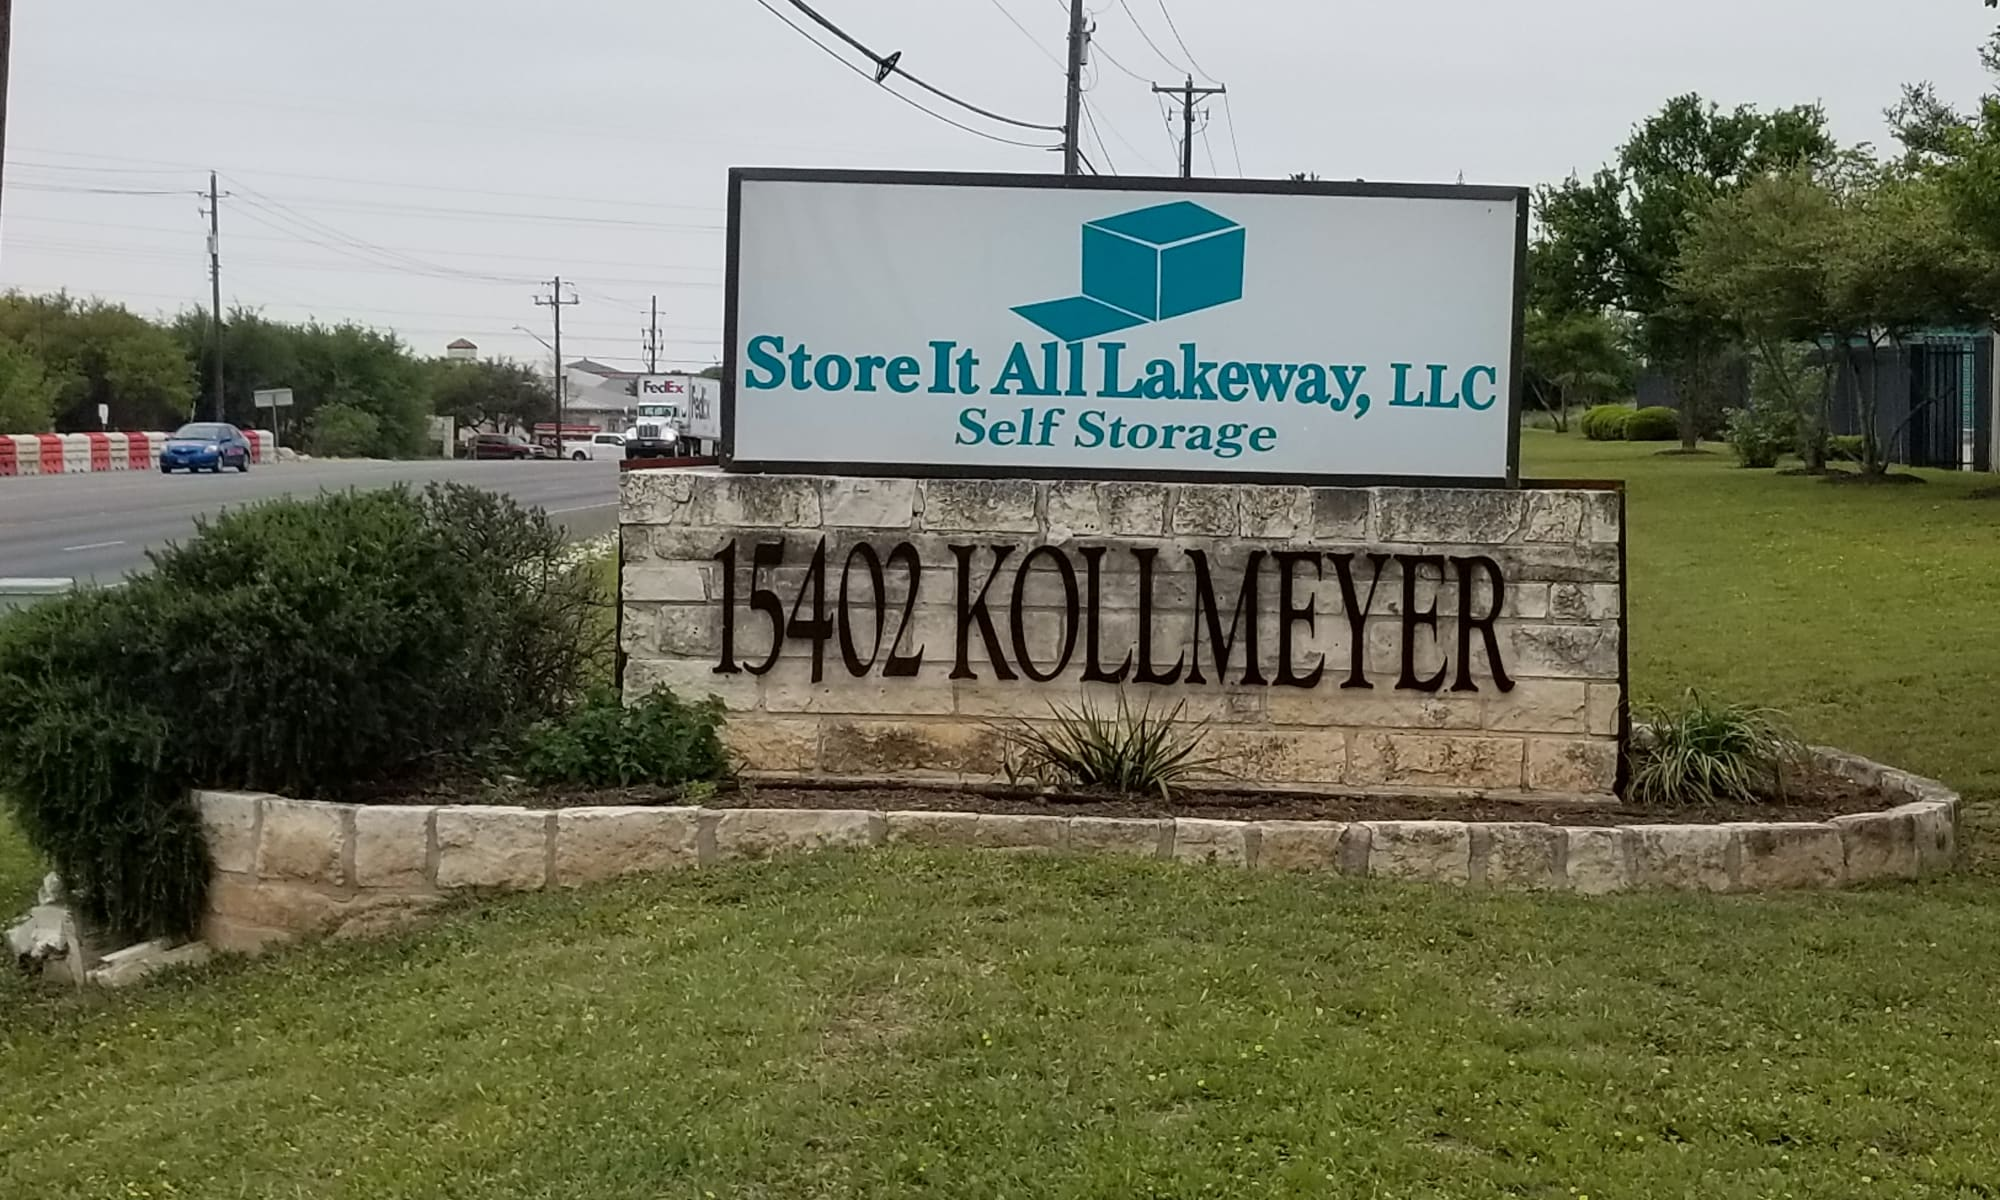 Store It All Self Storage - Lakeway self storage in Lakeway, Texas